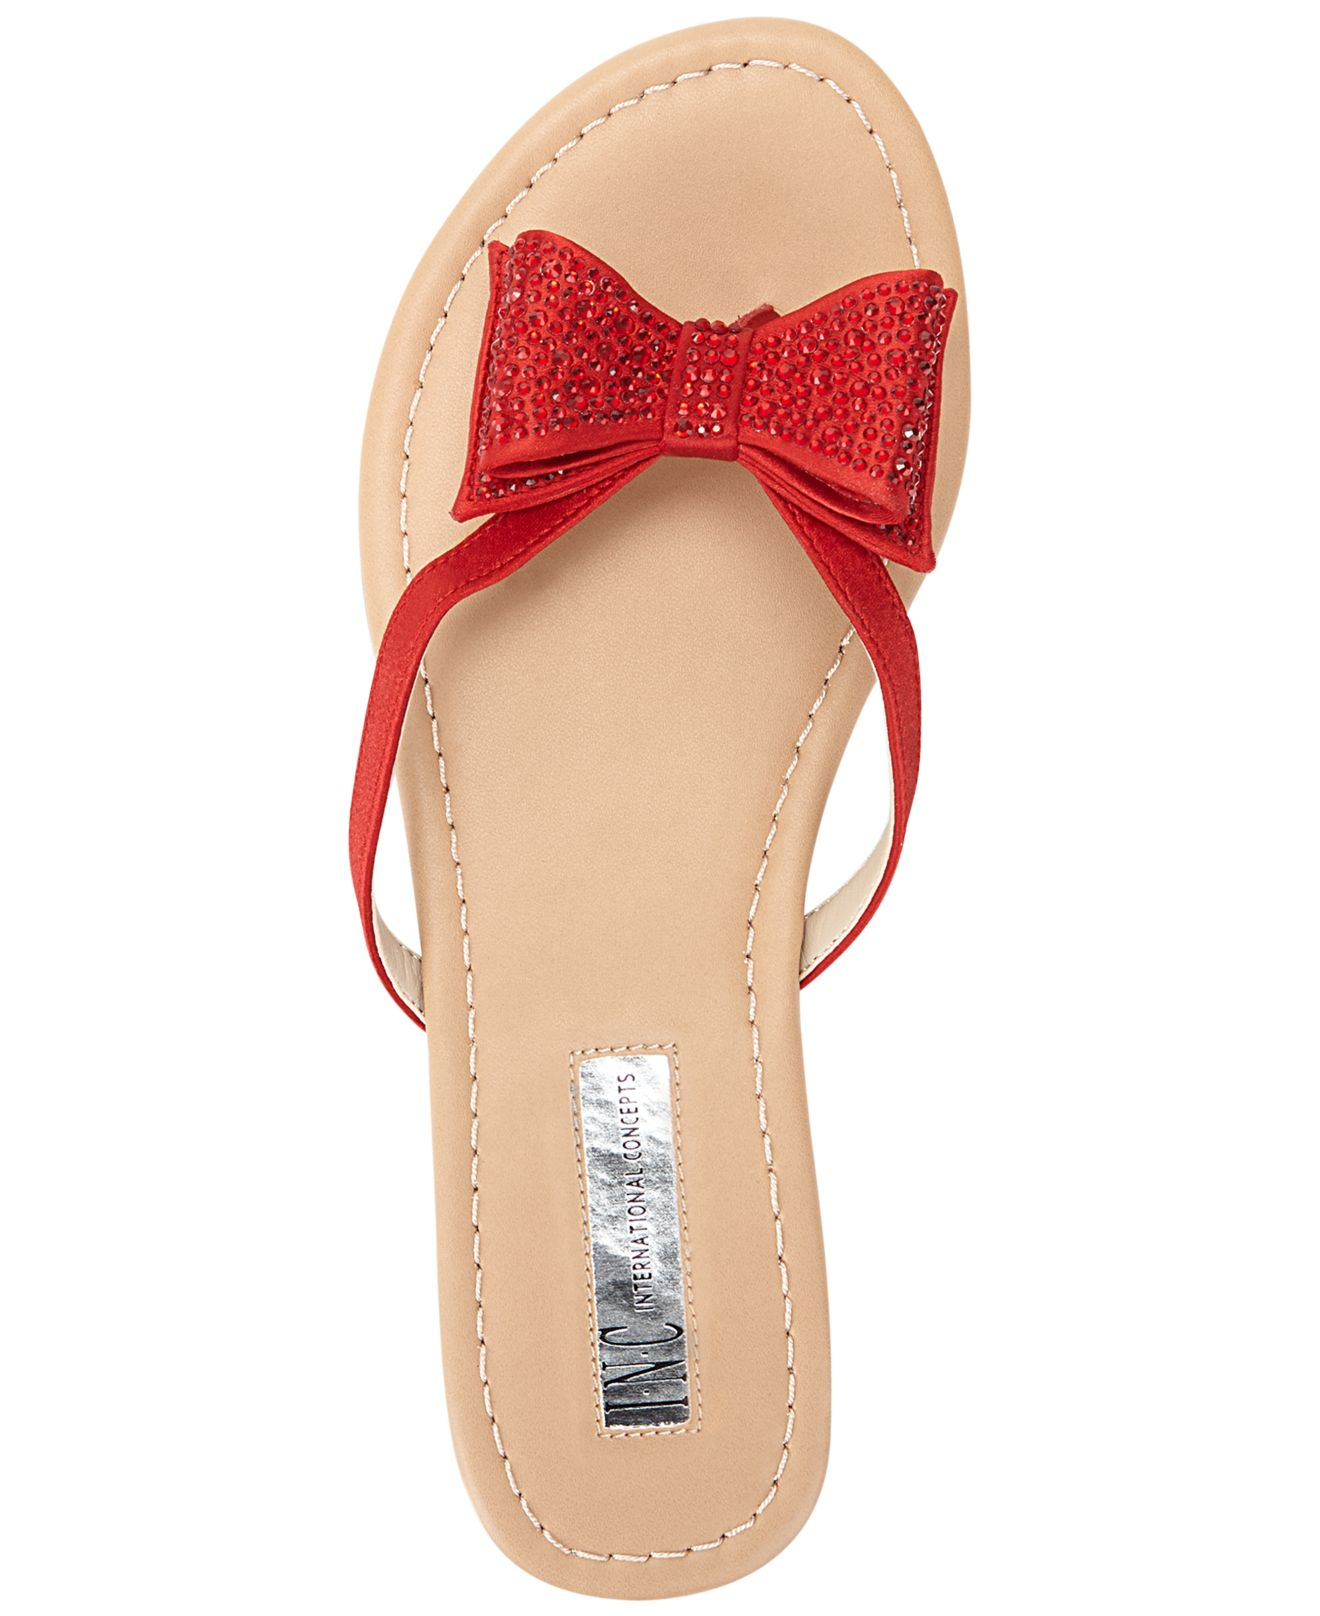 6af8a0ce95dc8 Lyst - INC International Concepts Women S Maey Bow Thong Sandals in Red